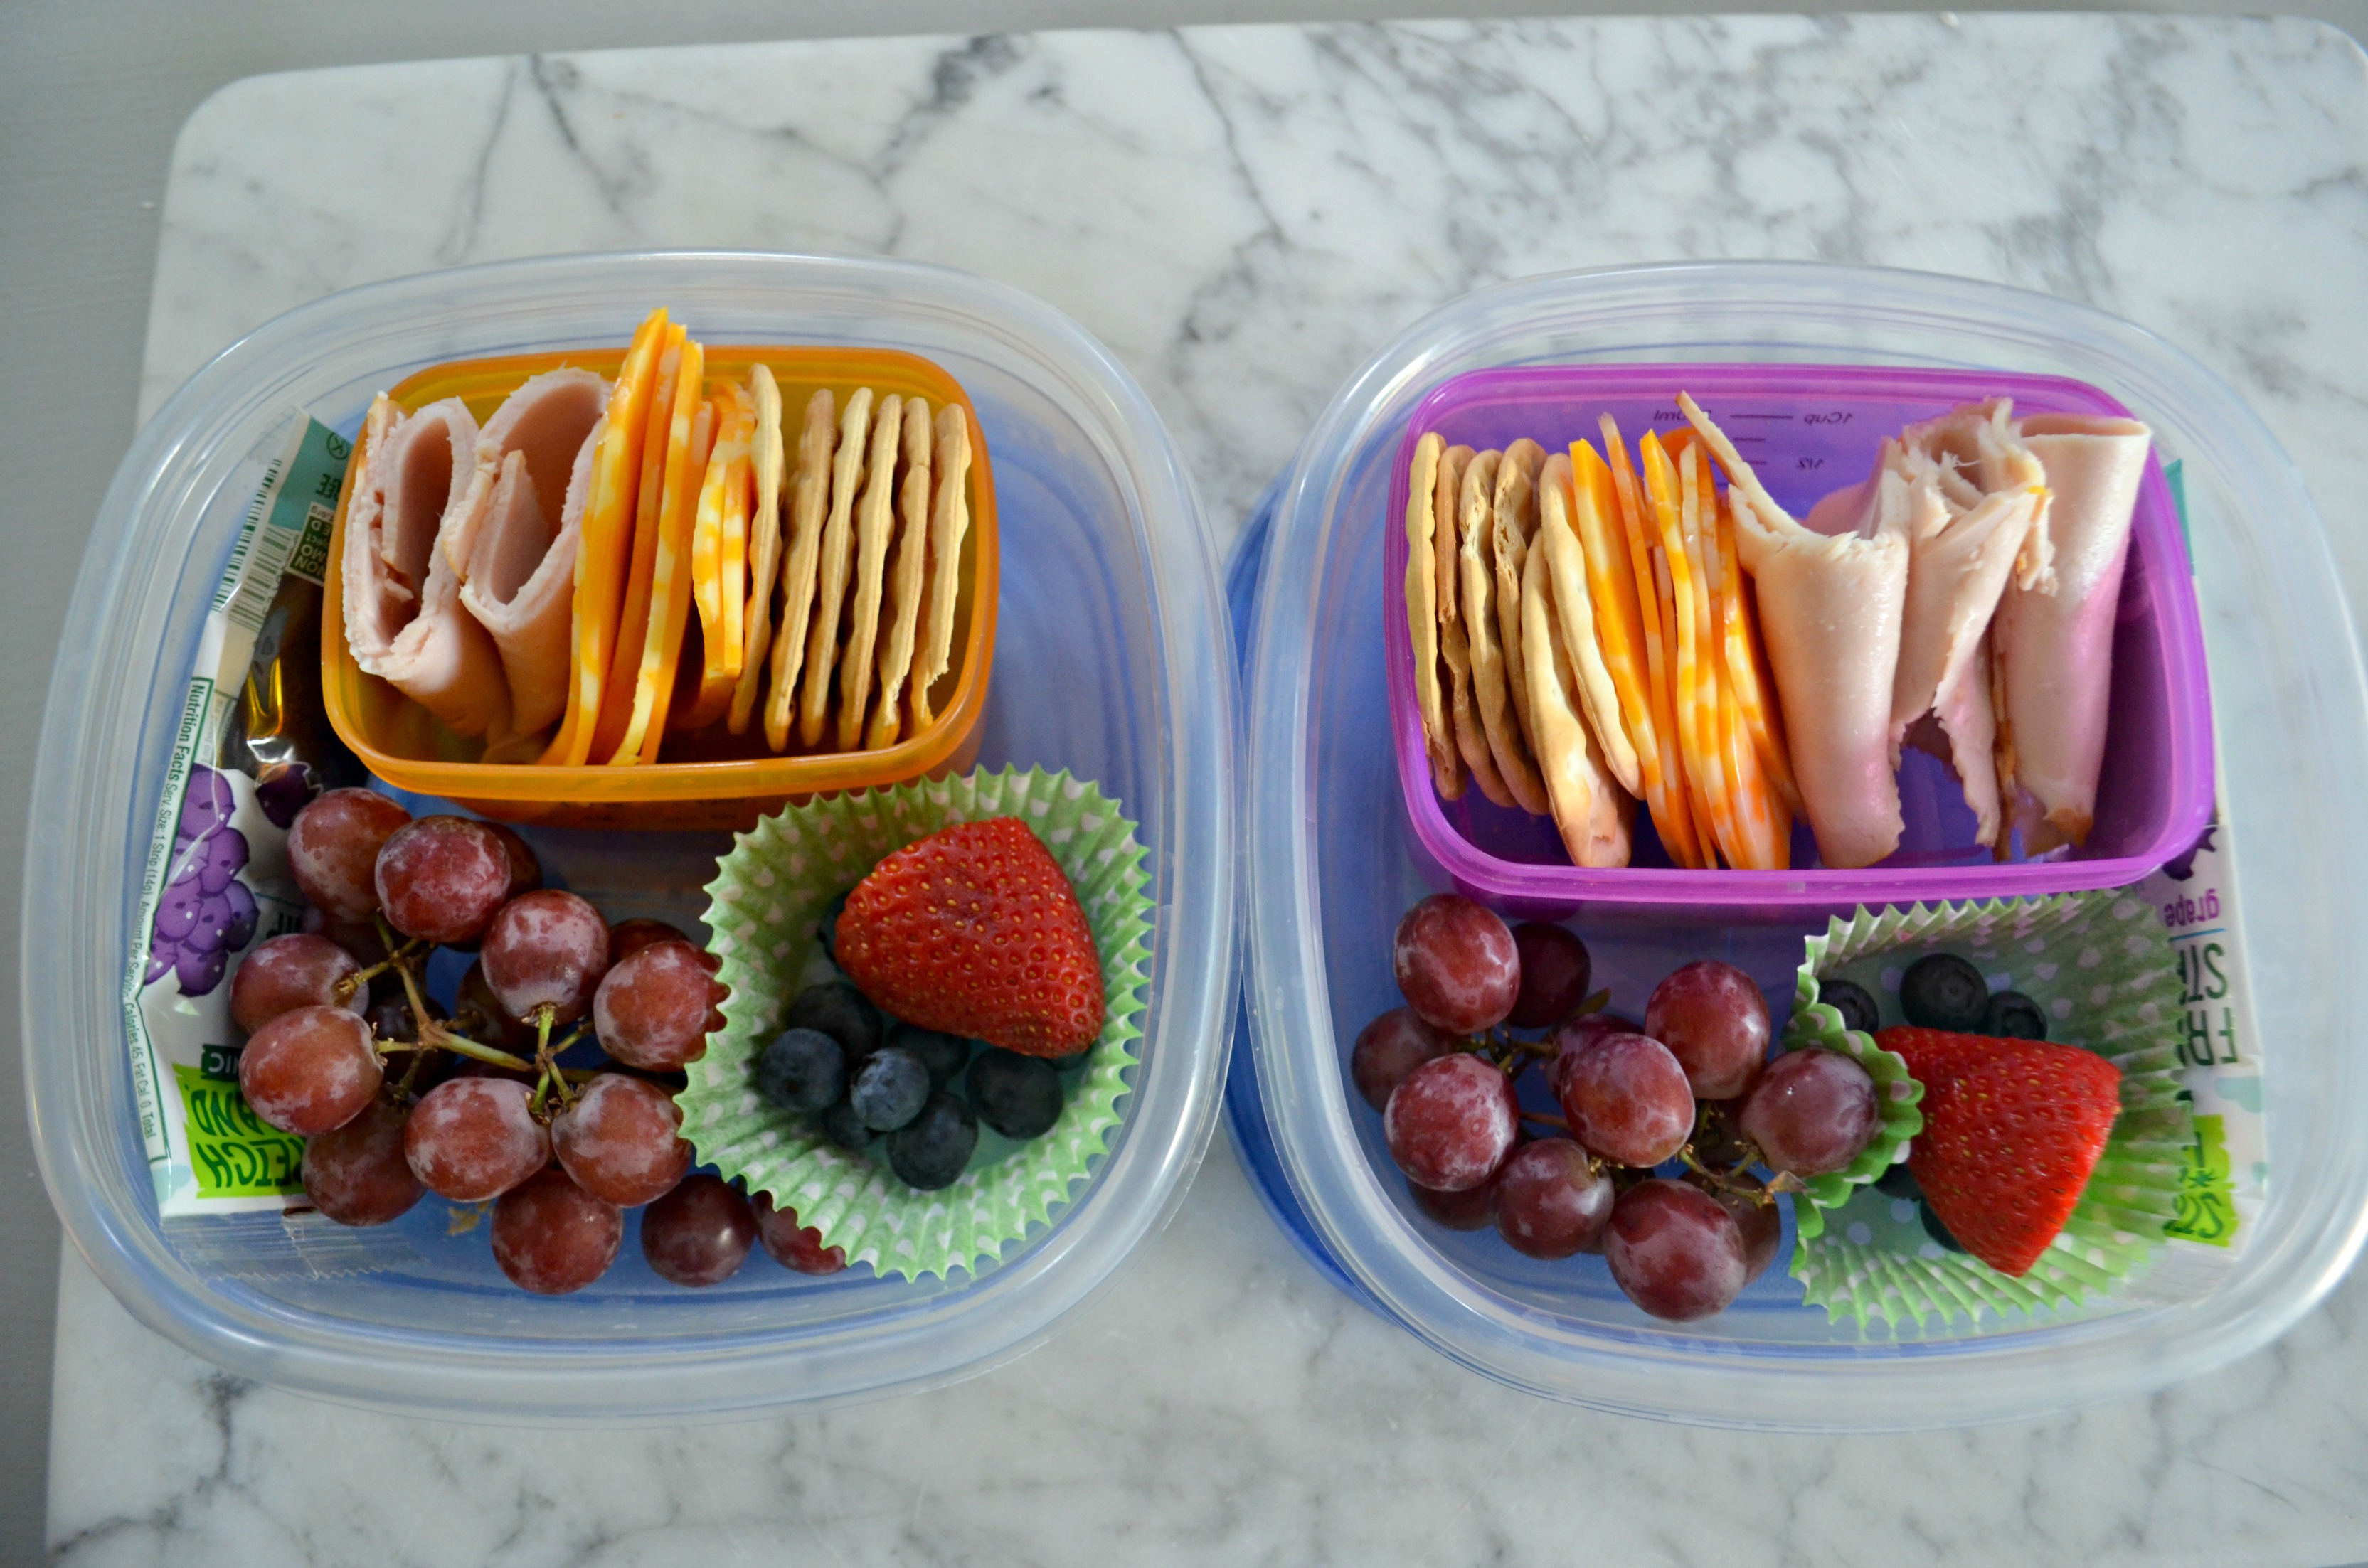 These school clever lunch box hacks are so easy – make your own Lunchables